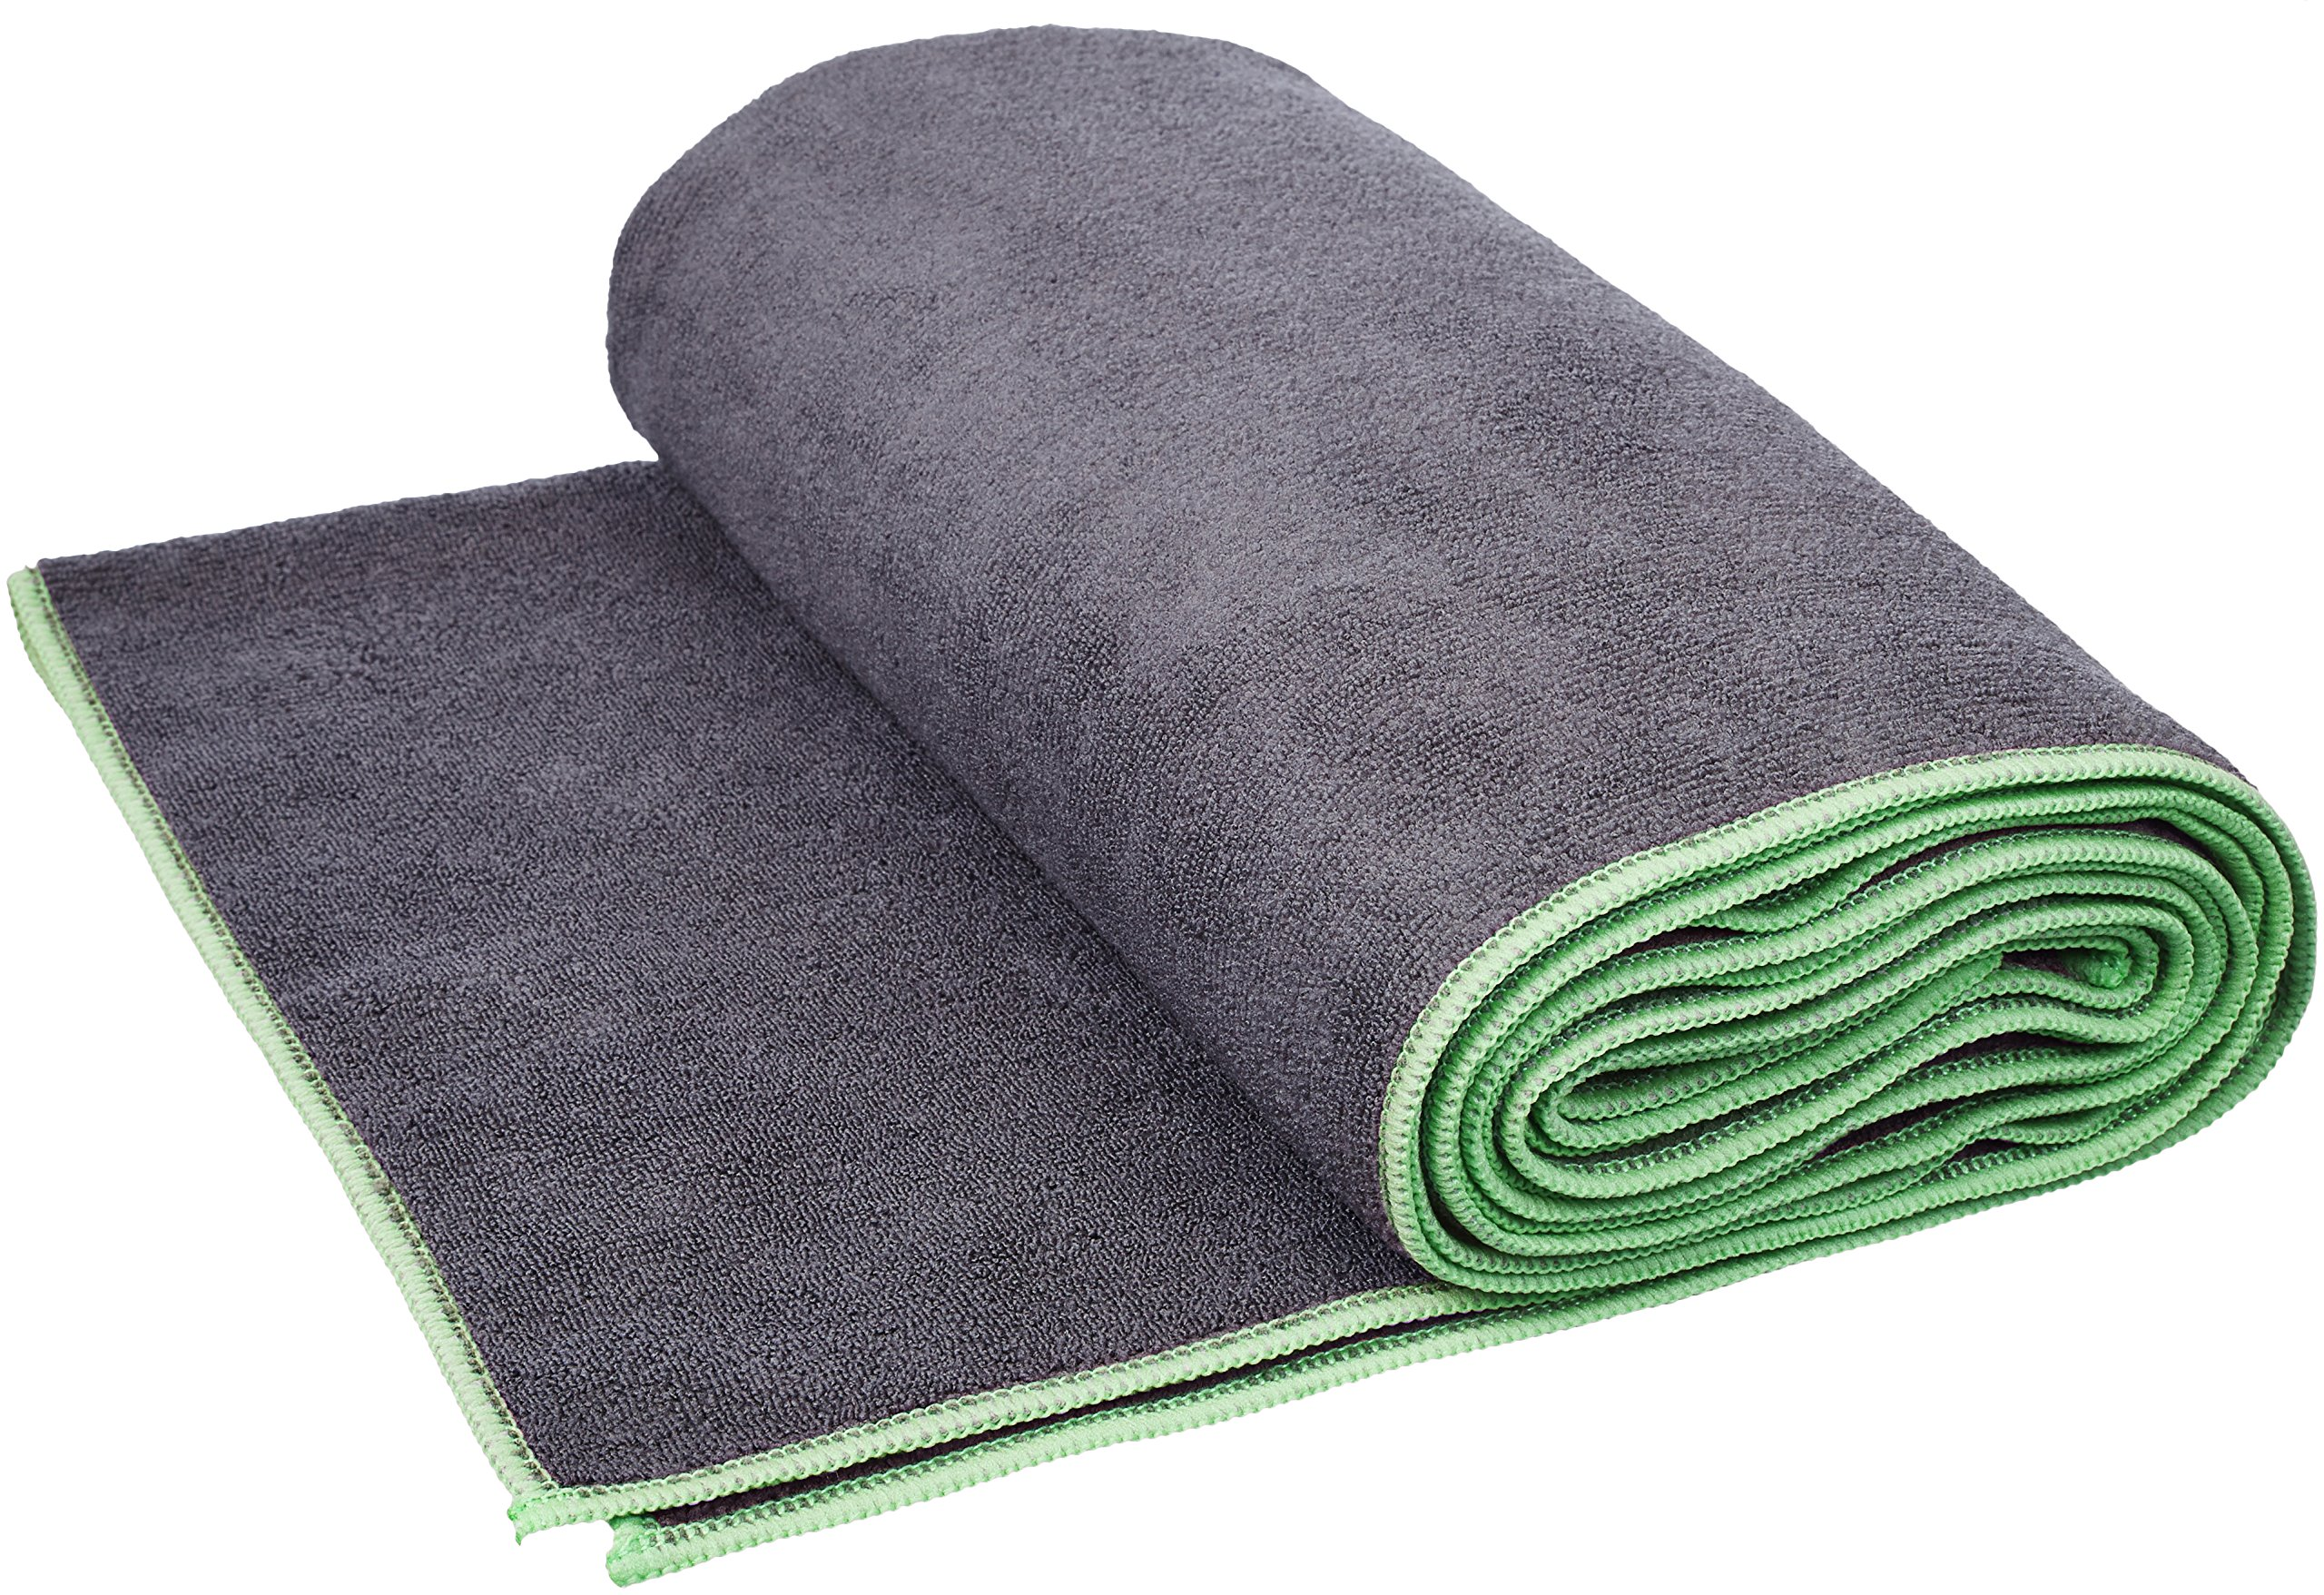 AmazonBasics Yoga Exercise Mat Towel